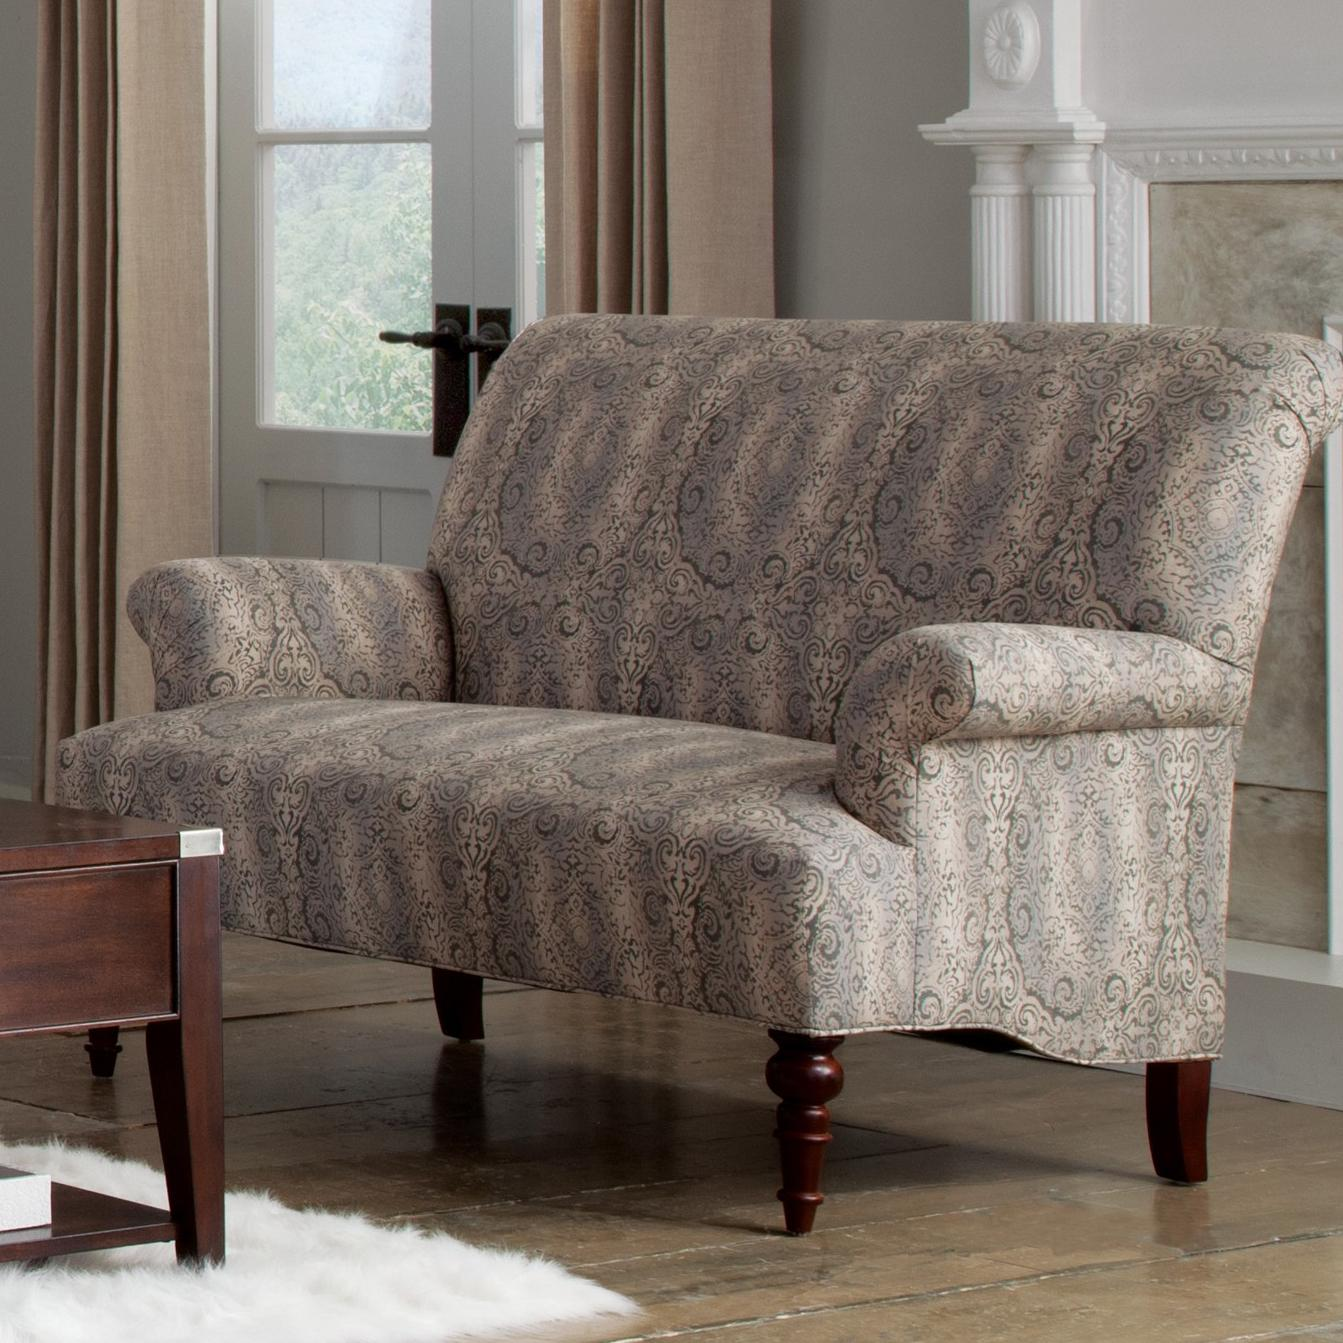 Strange Craftmaster Accent Chairs Traditional Settee With Rolled Inzonedesignstudio Interior Chair Design Inzonedesignstudiocom